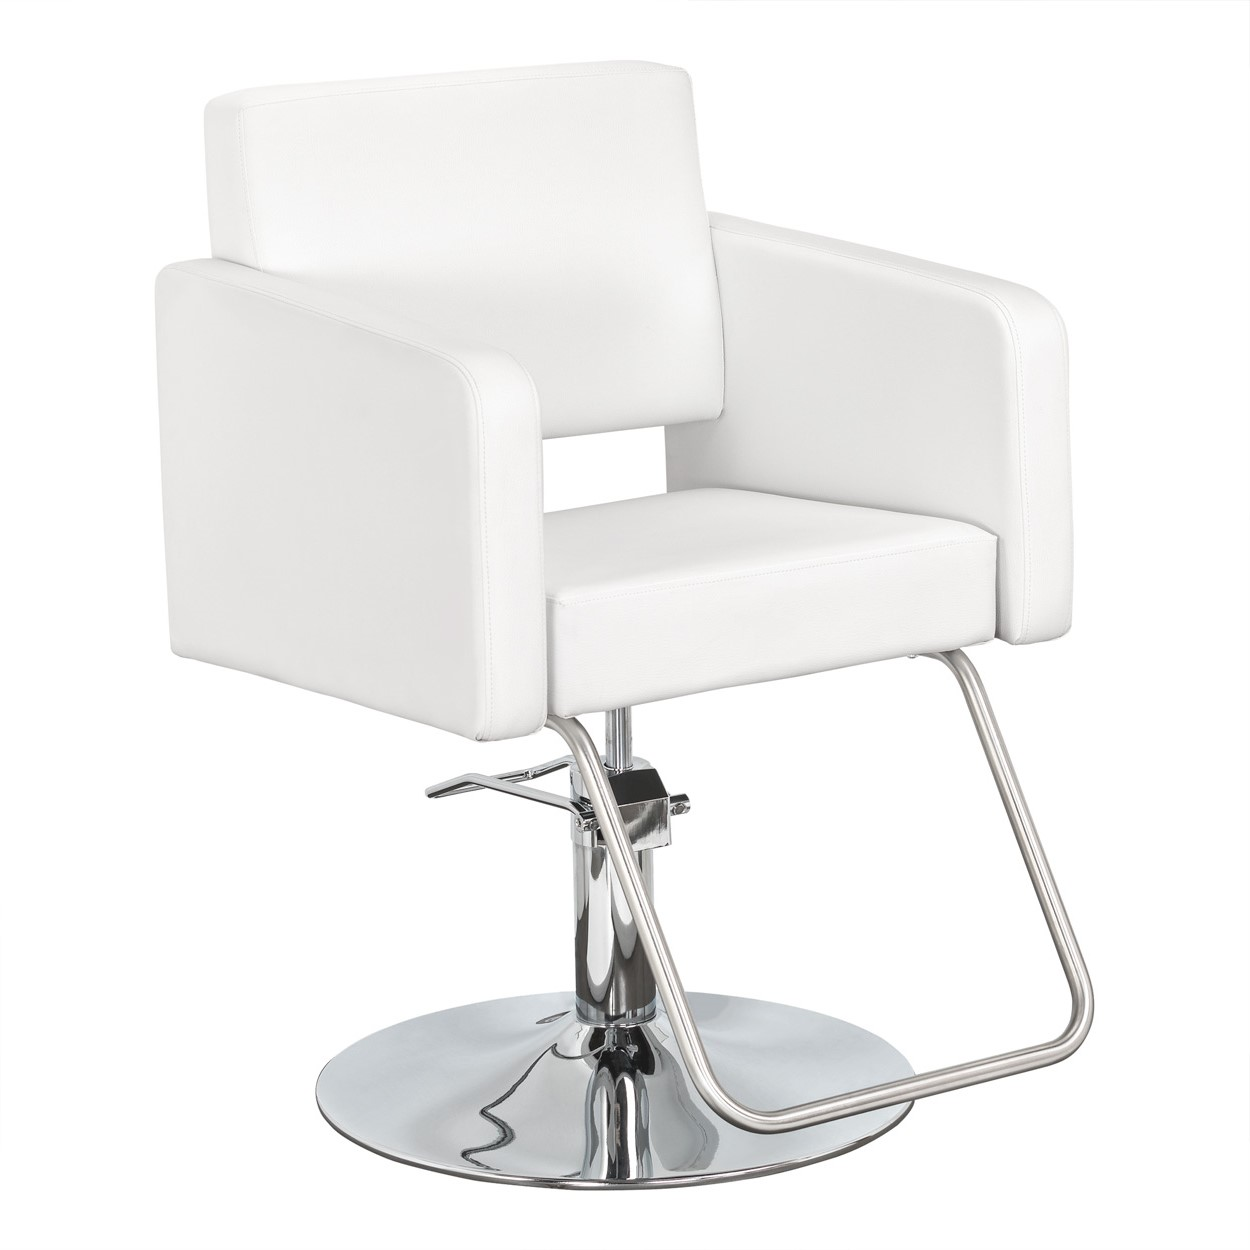 Modin Hair Salon Styling Chair in Grey or White alternative product image 3